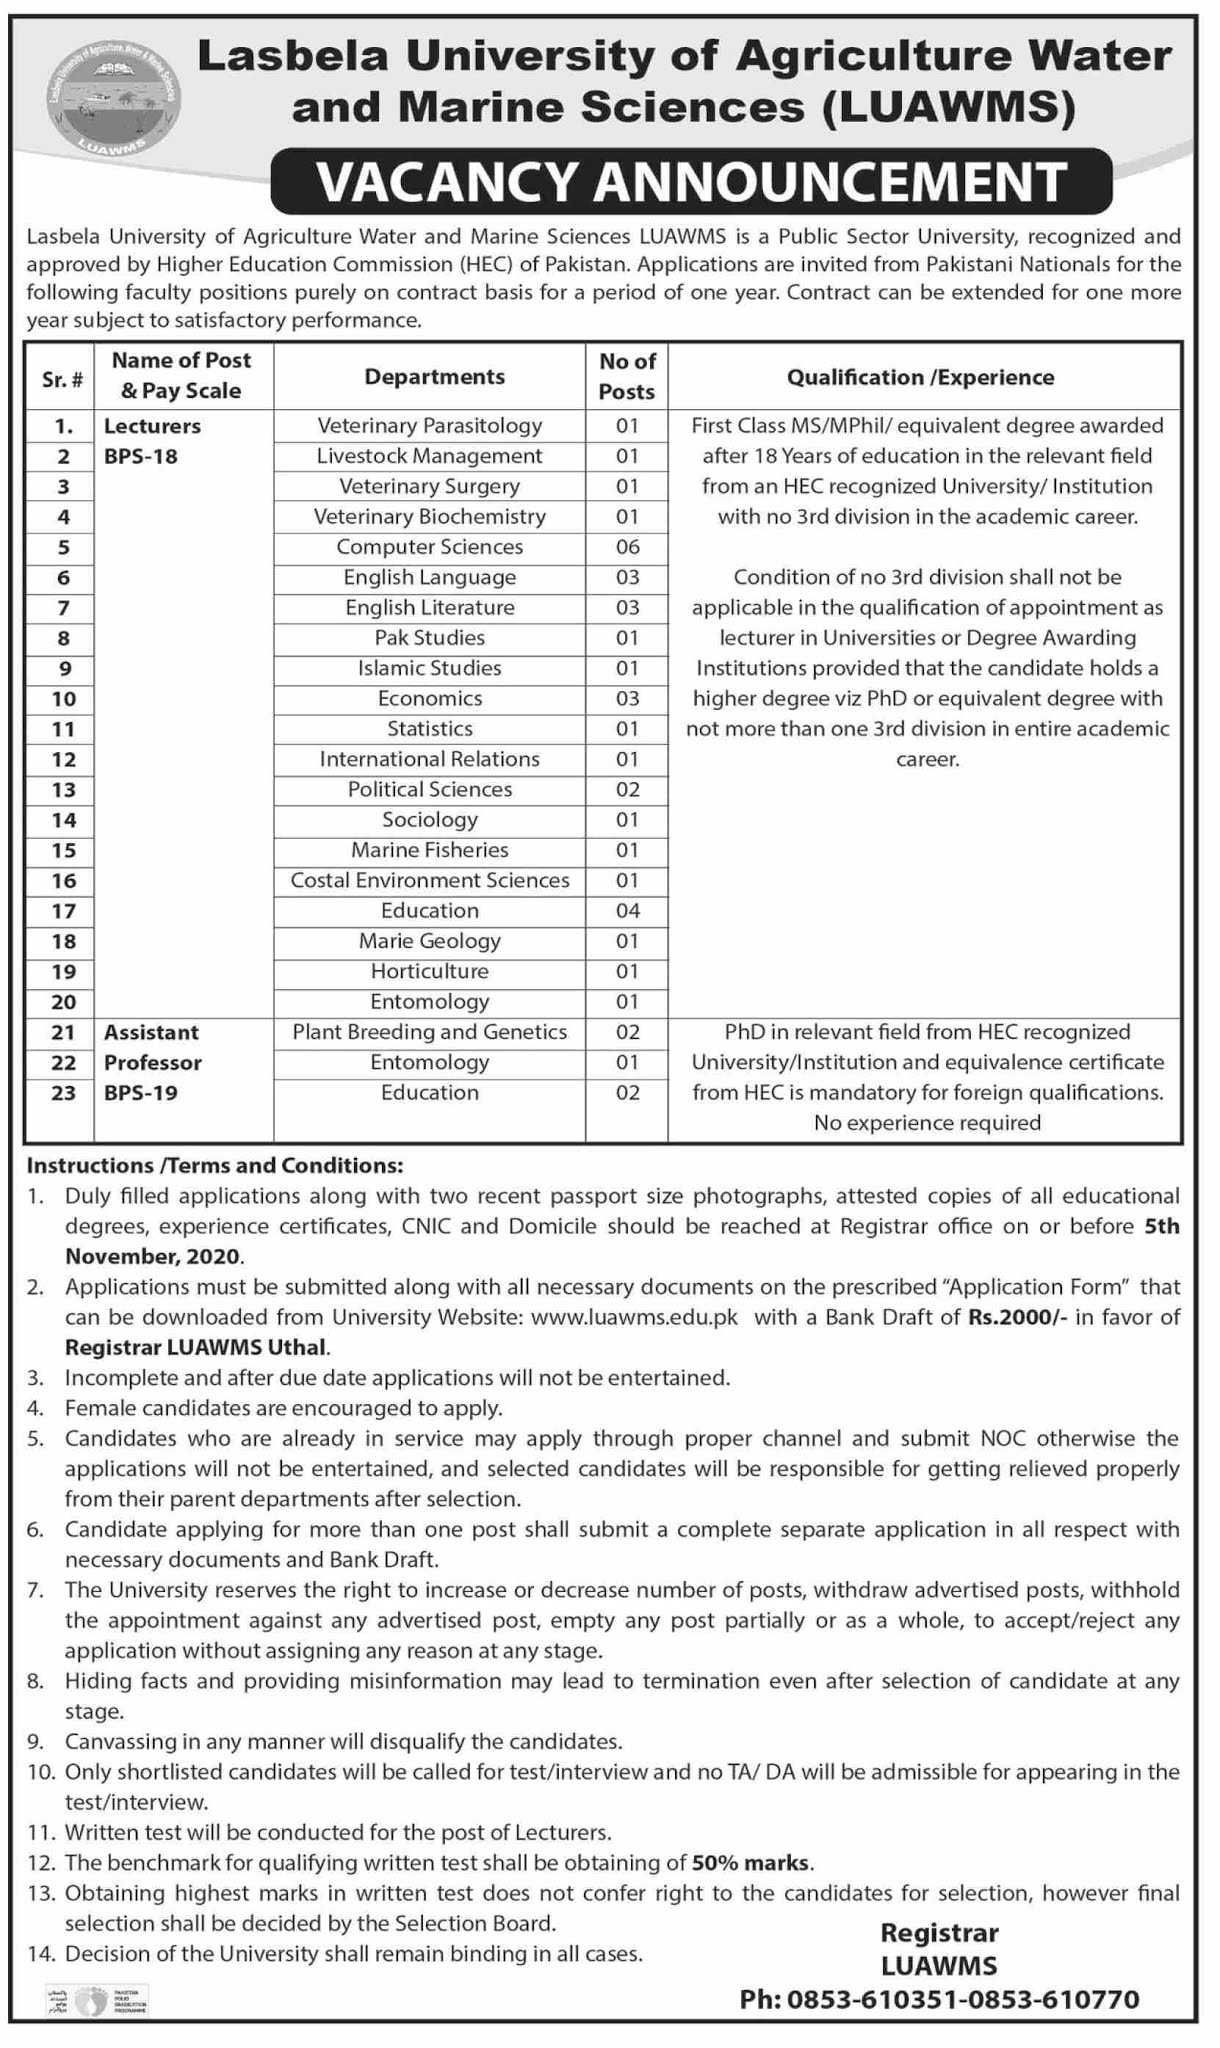 LUAWMS Lasbela University of Agriculture Water and Marine Sciences Jobs Download Application Form Jobs 2021-2022 - Apply Online - www.luawms.edu.pk